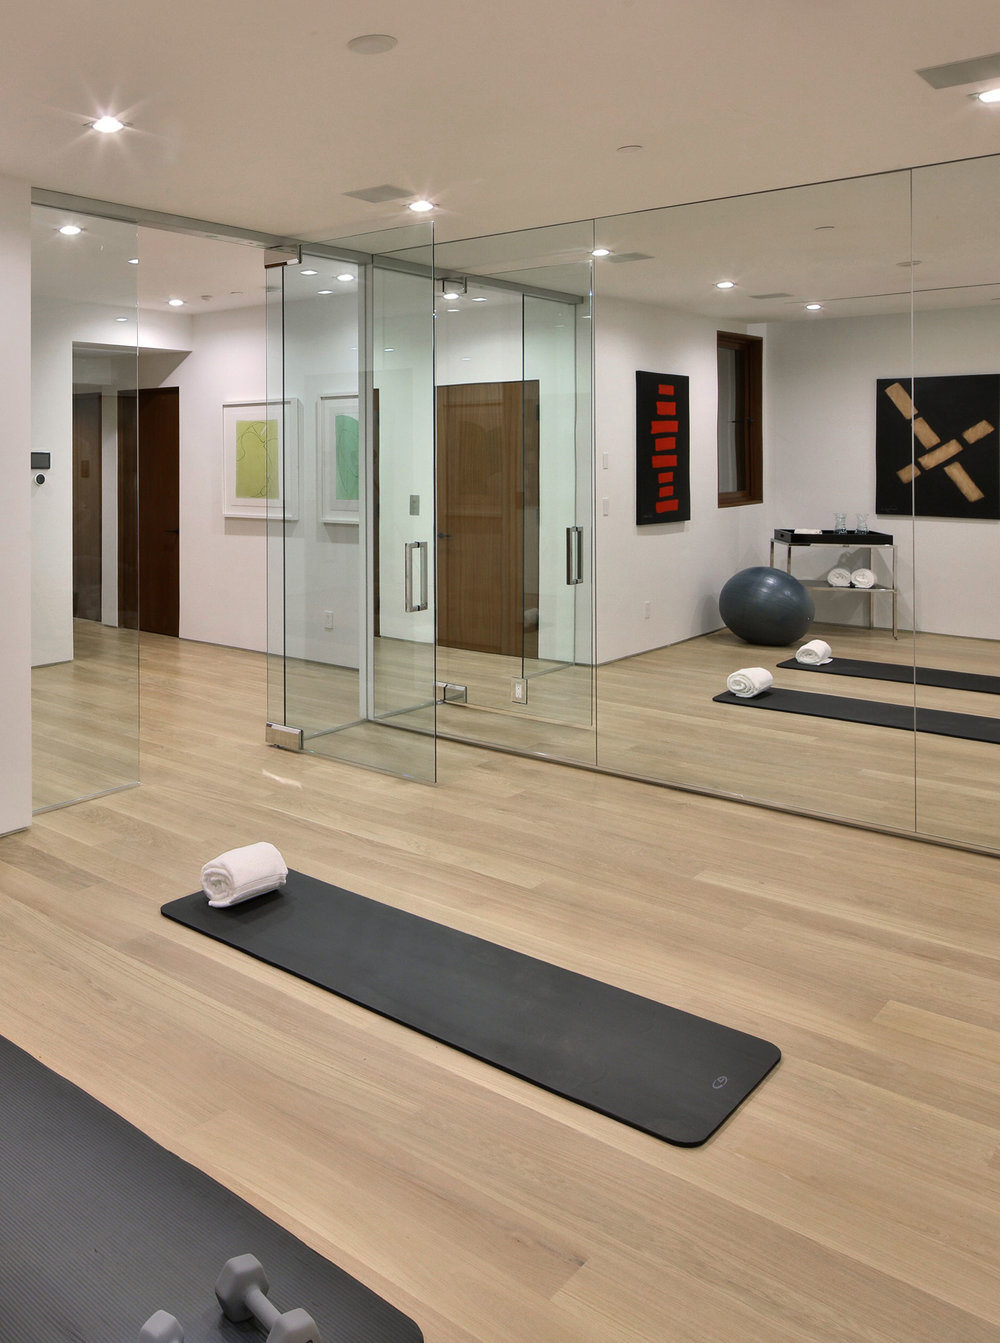 7-home-gym-modern-los-angeles-SiliconBay.jpg